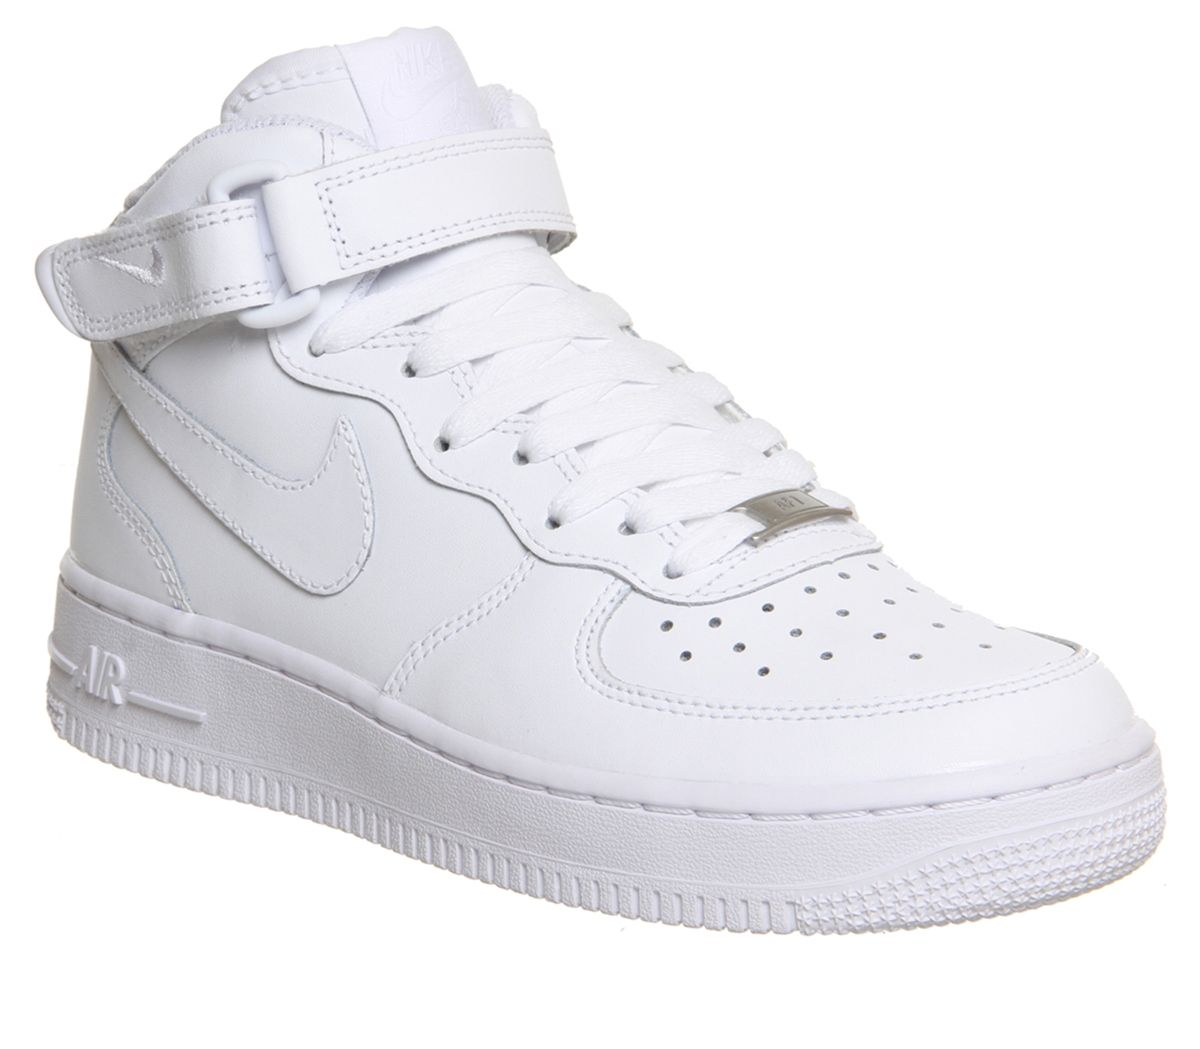 9e471d19d Nike Air Force 1 Mid White - Office Girl